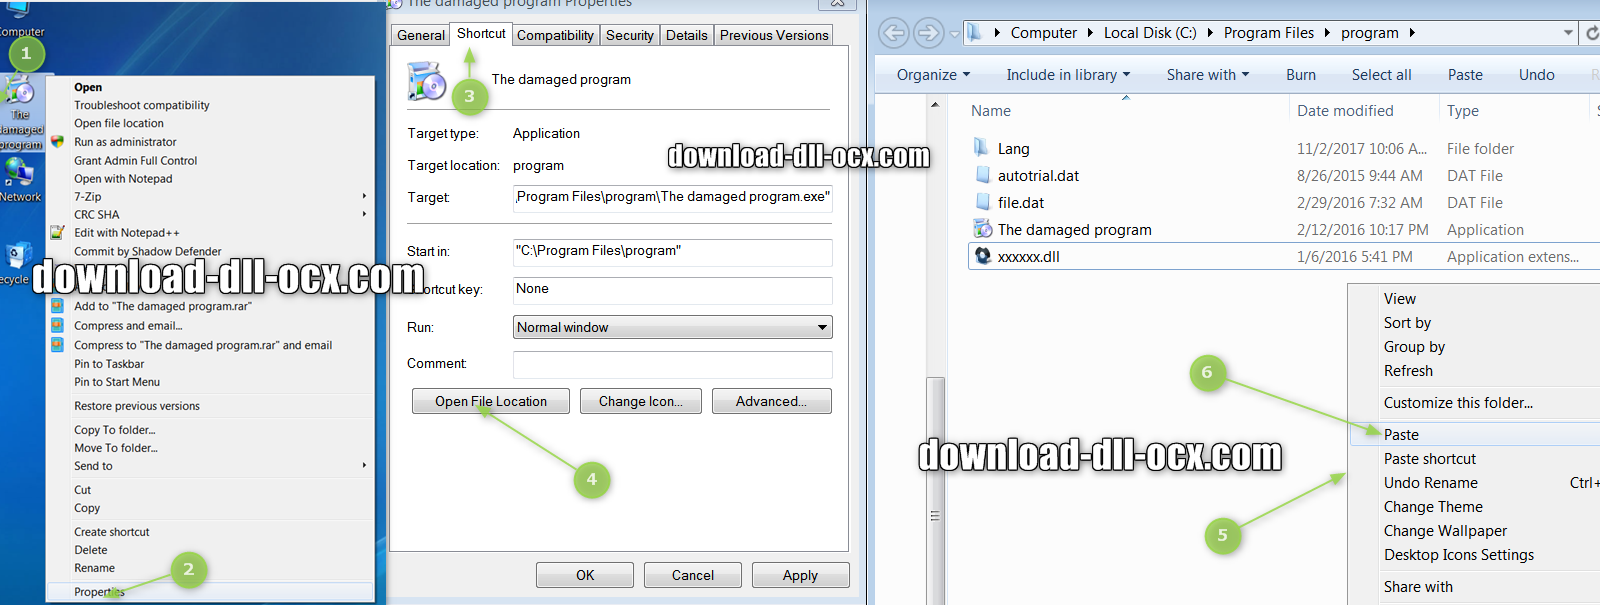 how to install SPRESOLV.dll file? for fix missing